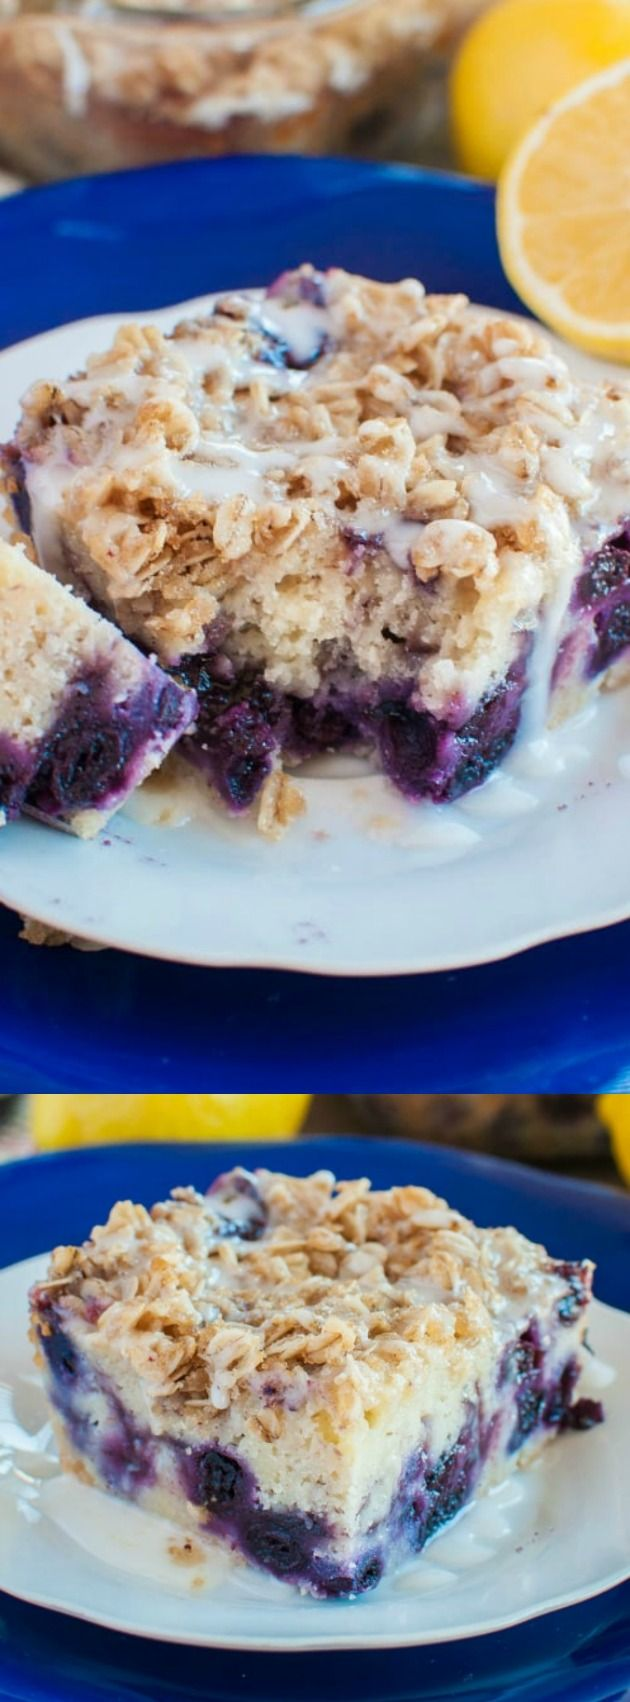 This Lemon Blueberry Coffee Cake from Back For Seconds is absolutely delectable! Rich cake loaded with blueberries is topped with streusel and a lemon glaze!